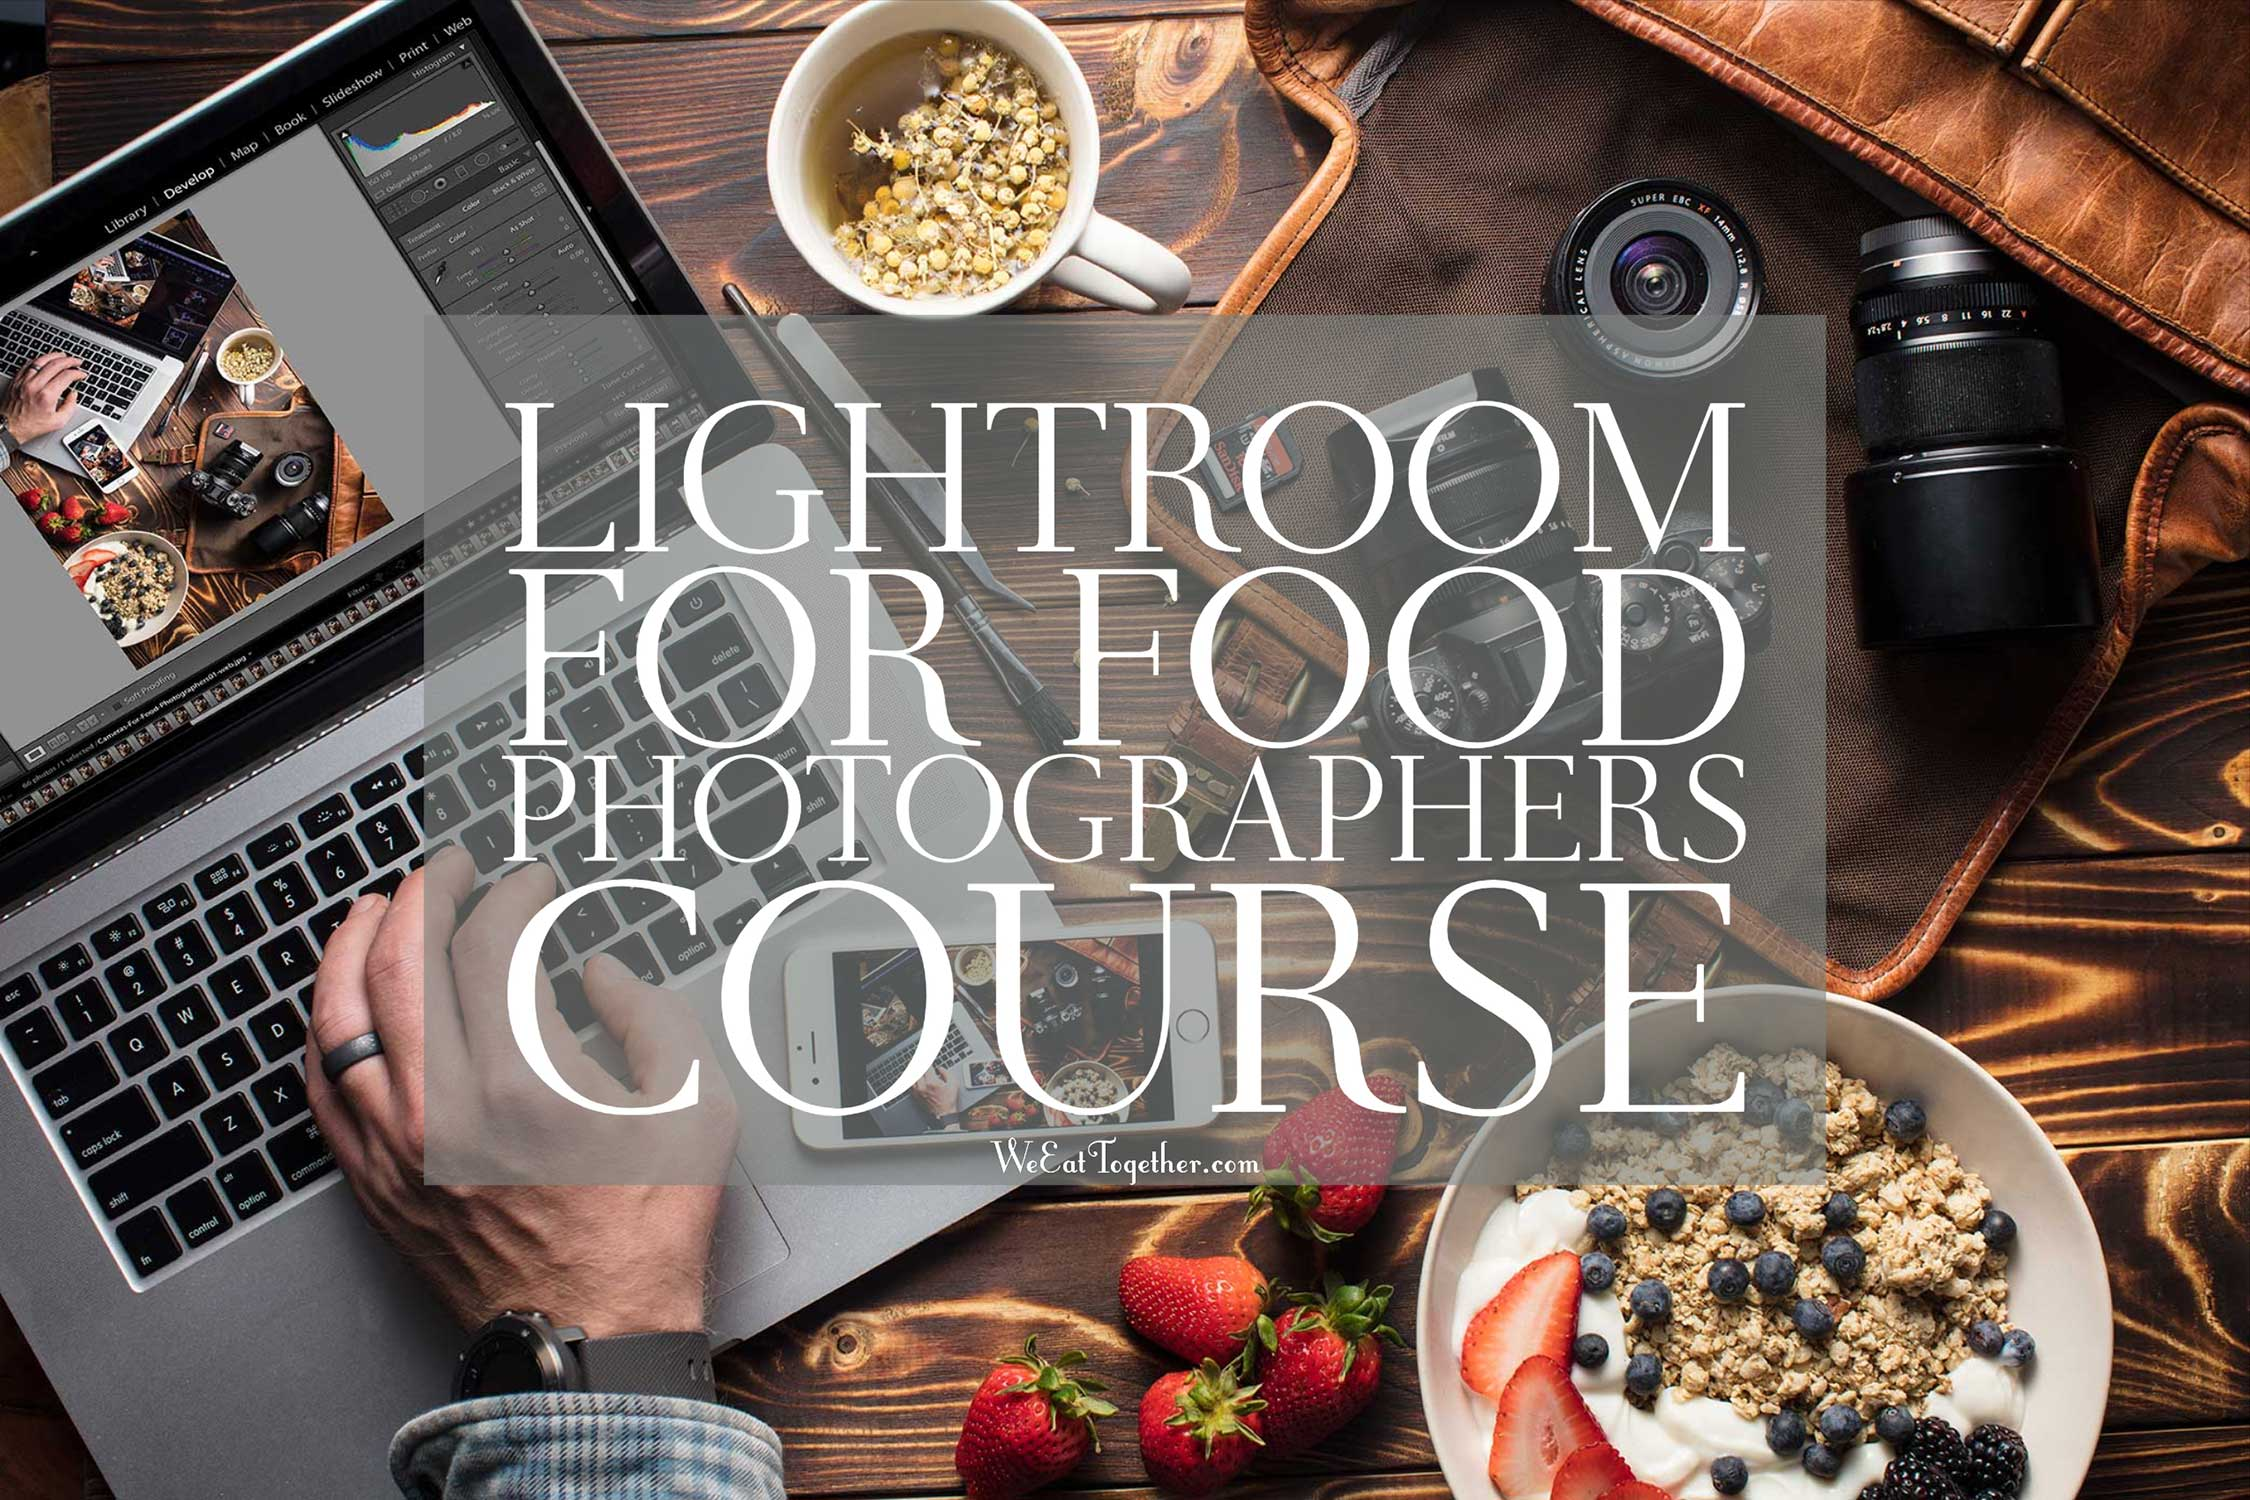 Lightroom For Food Photography Course